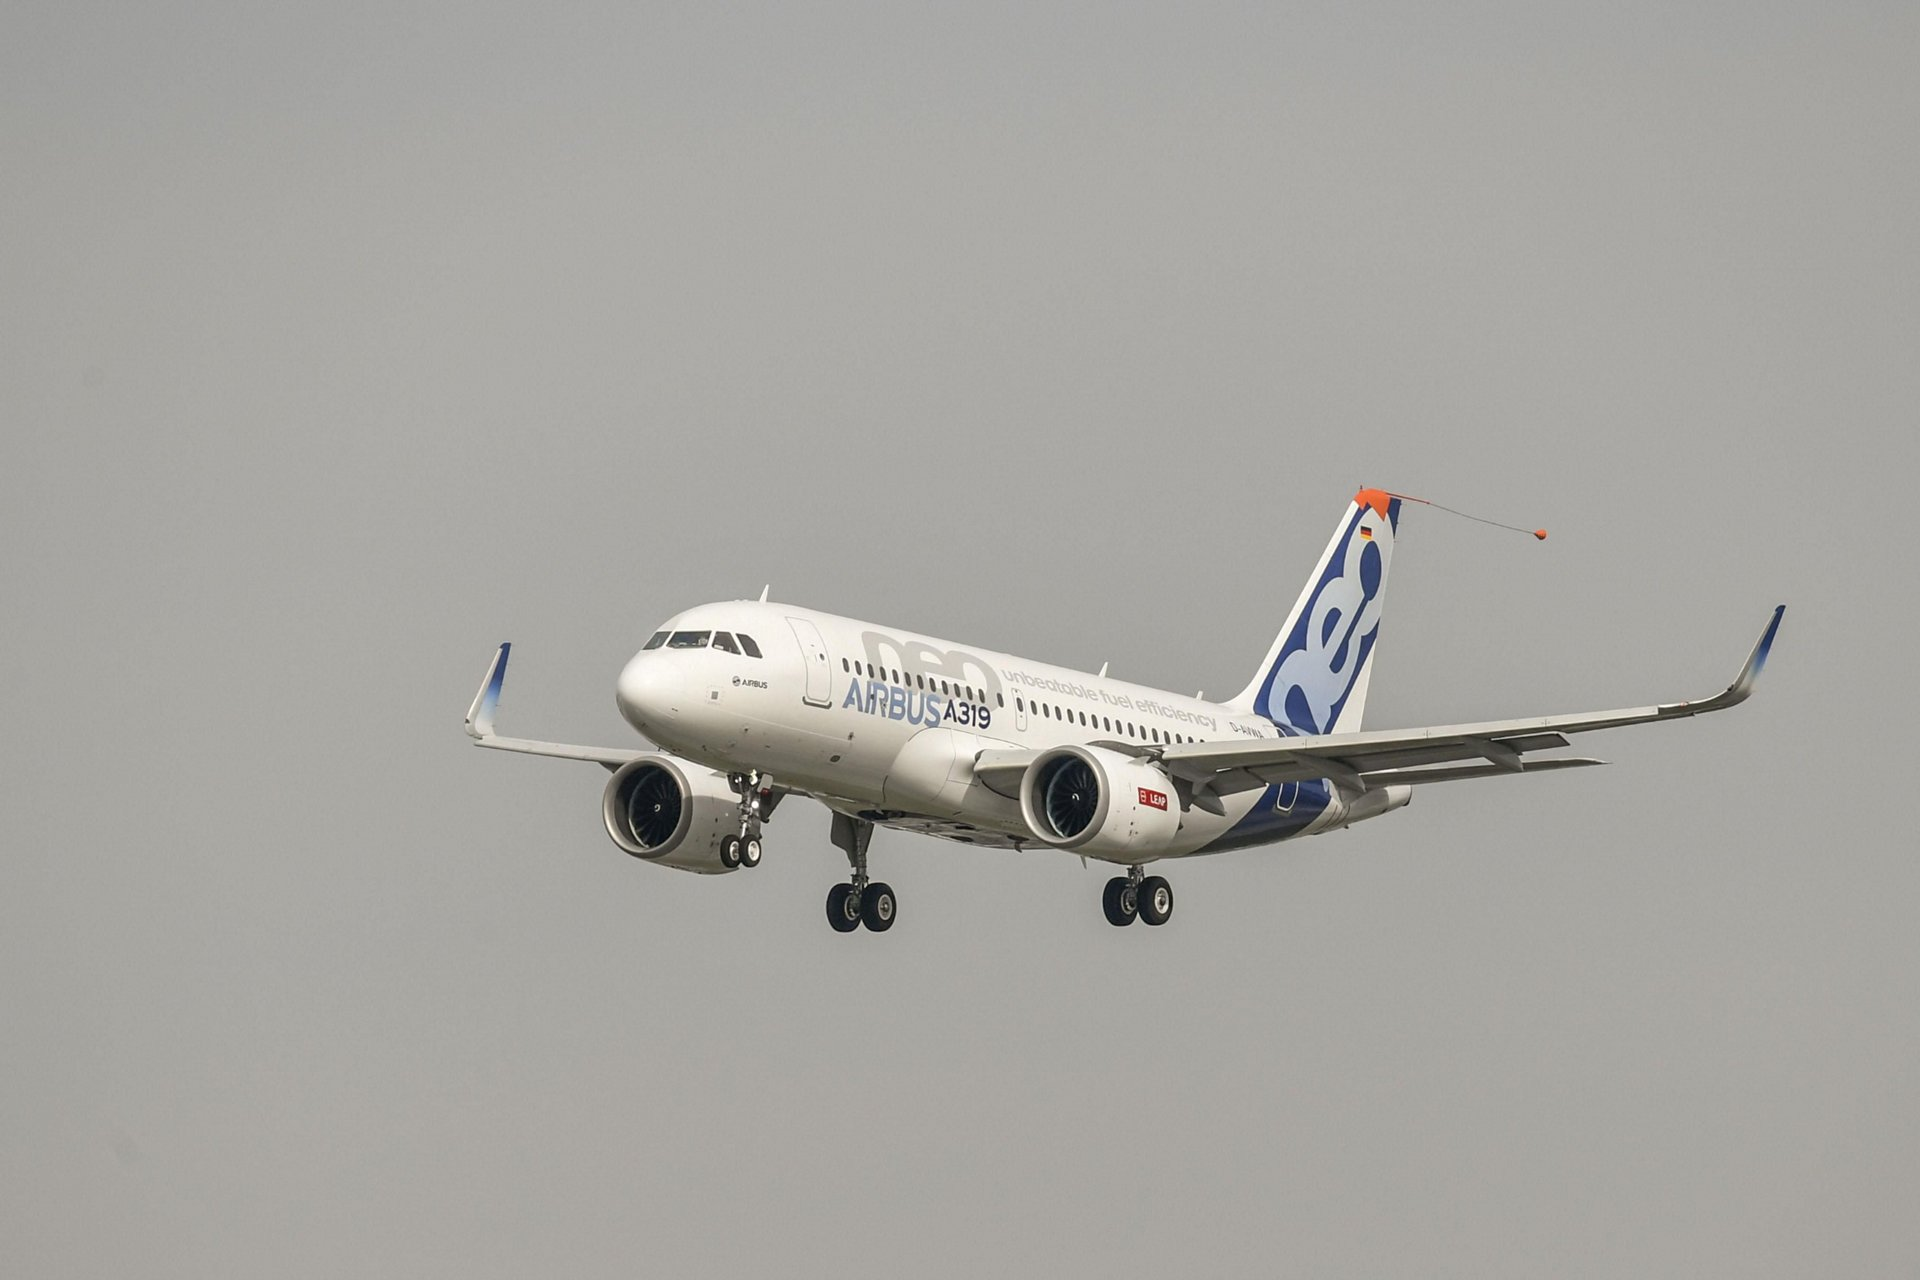 The A319neo powered by CFM International LEAP-1A engines received joint Type Certification from the US FAA and European EASA airworthiness authorities in December 2018